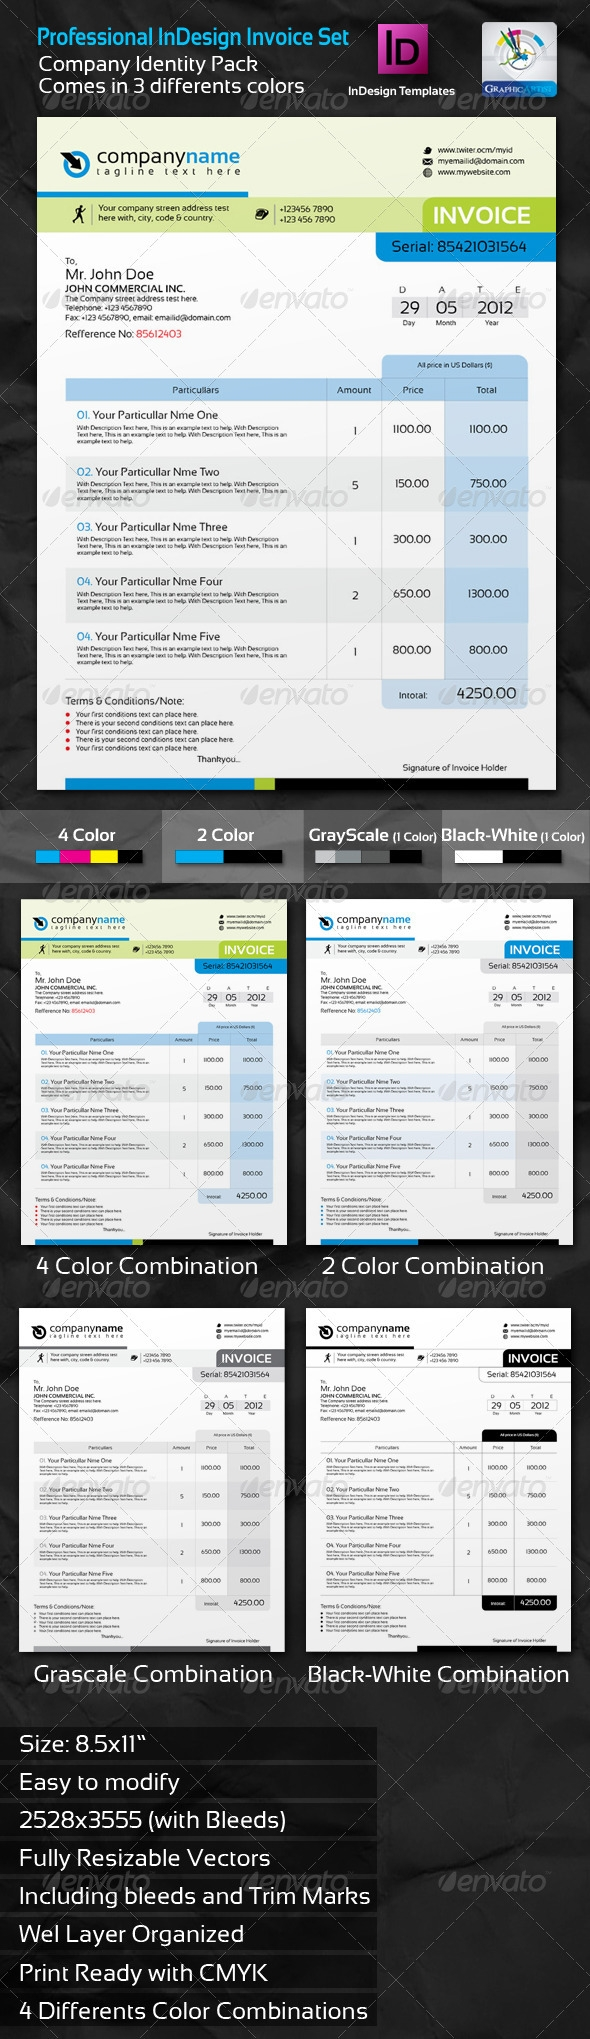 indesign invoice template professional invoice indesign template set graphicriver 590 X 2039